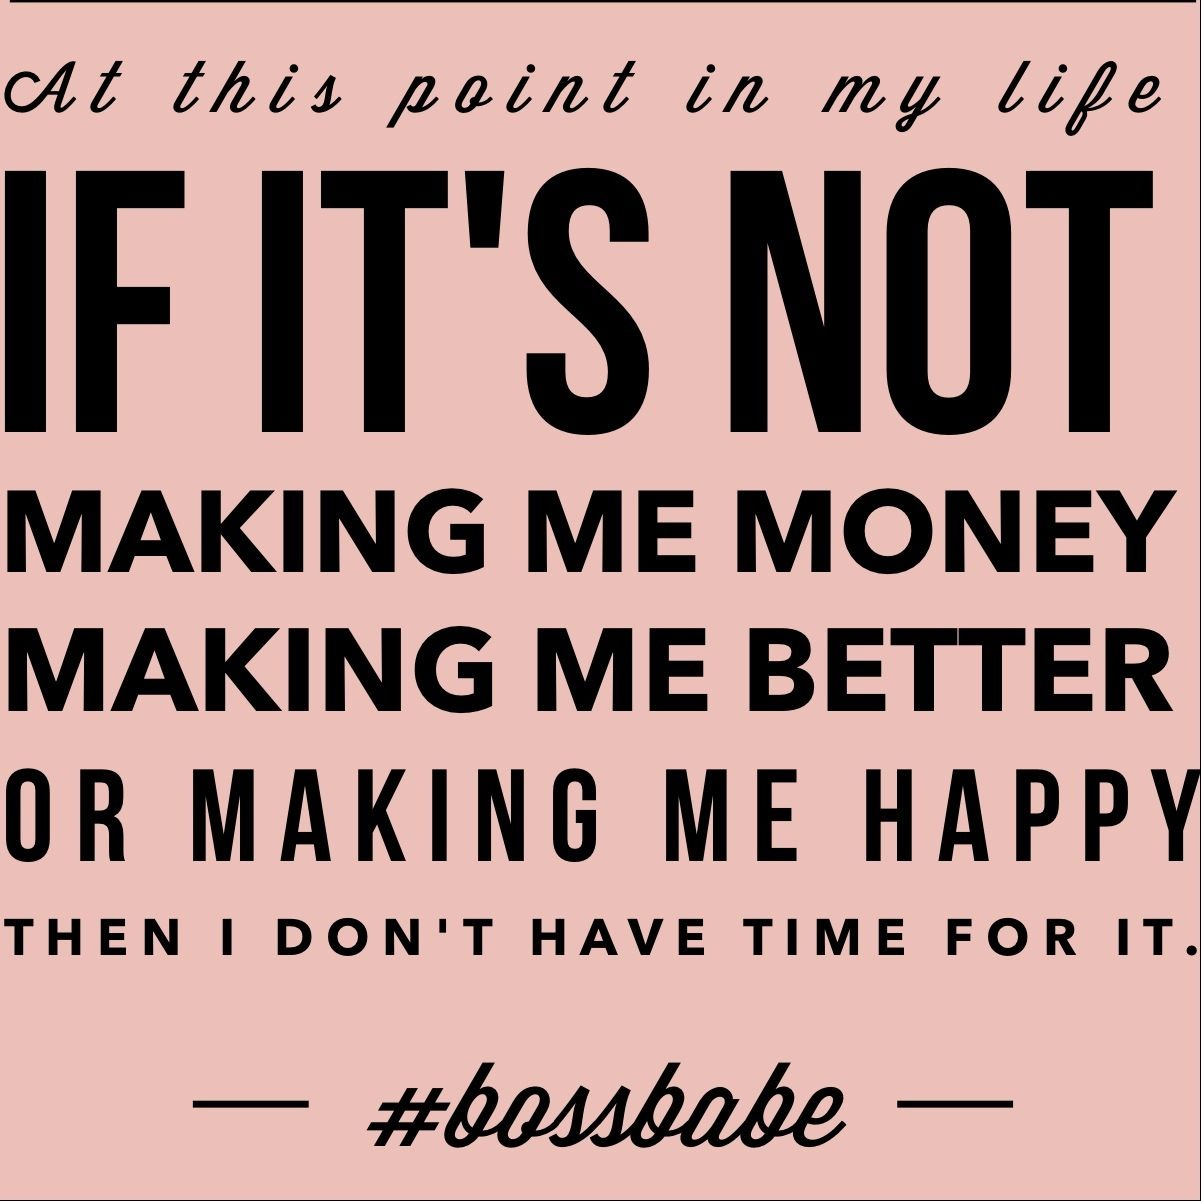 Making Money Quotes Life And Style on Etsy | All Me! | Quotes, Inspirational Quotes  Making Money Quotes